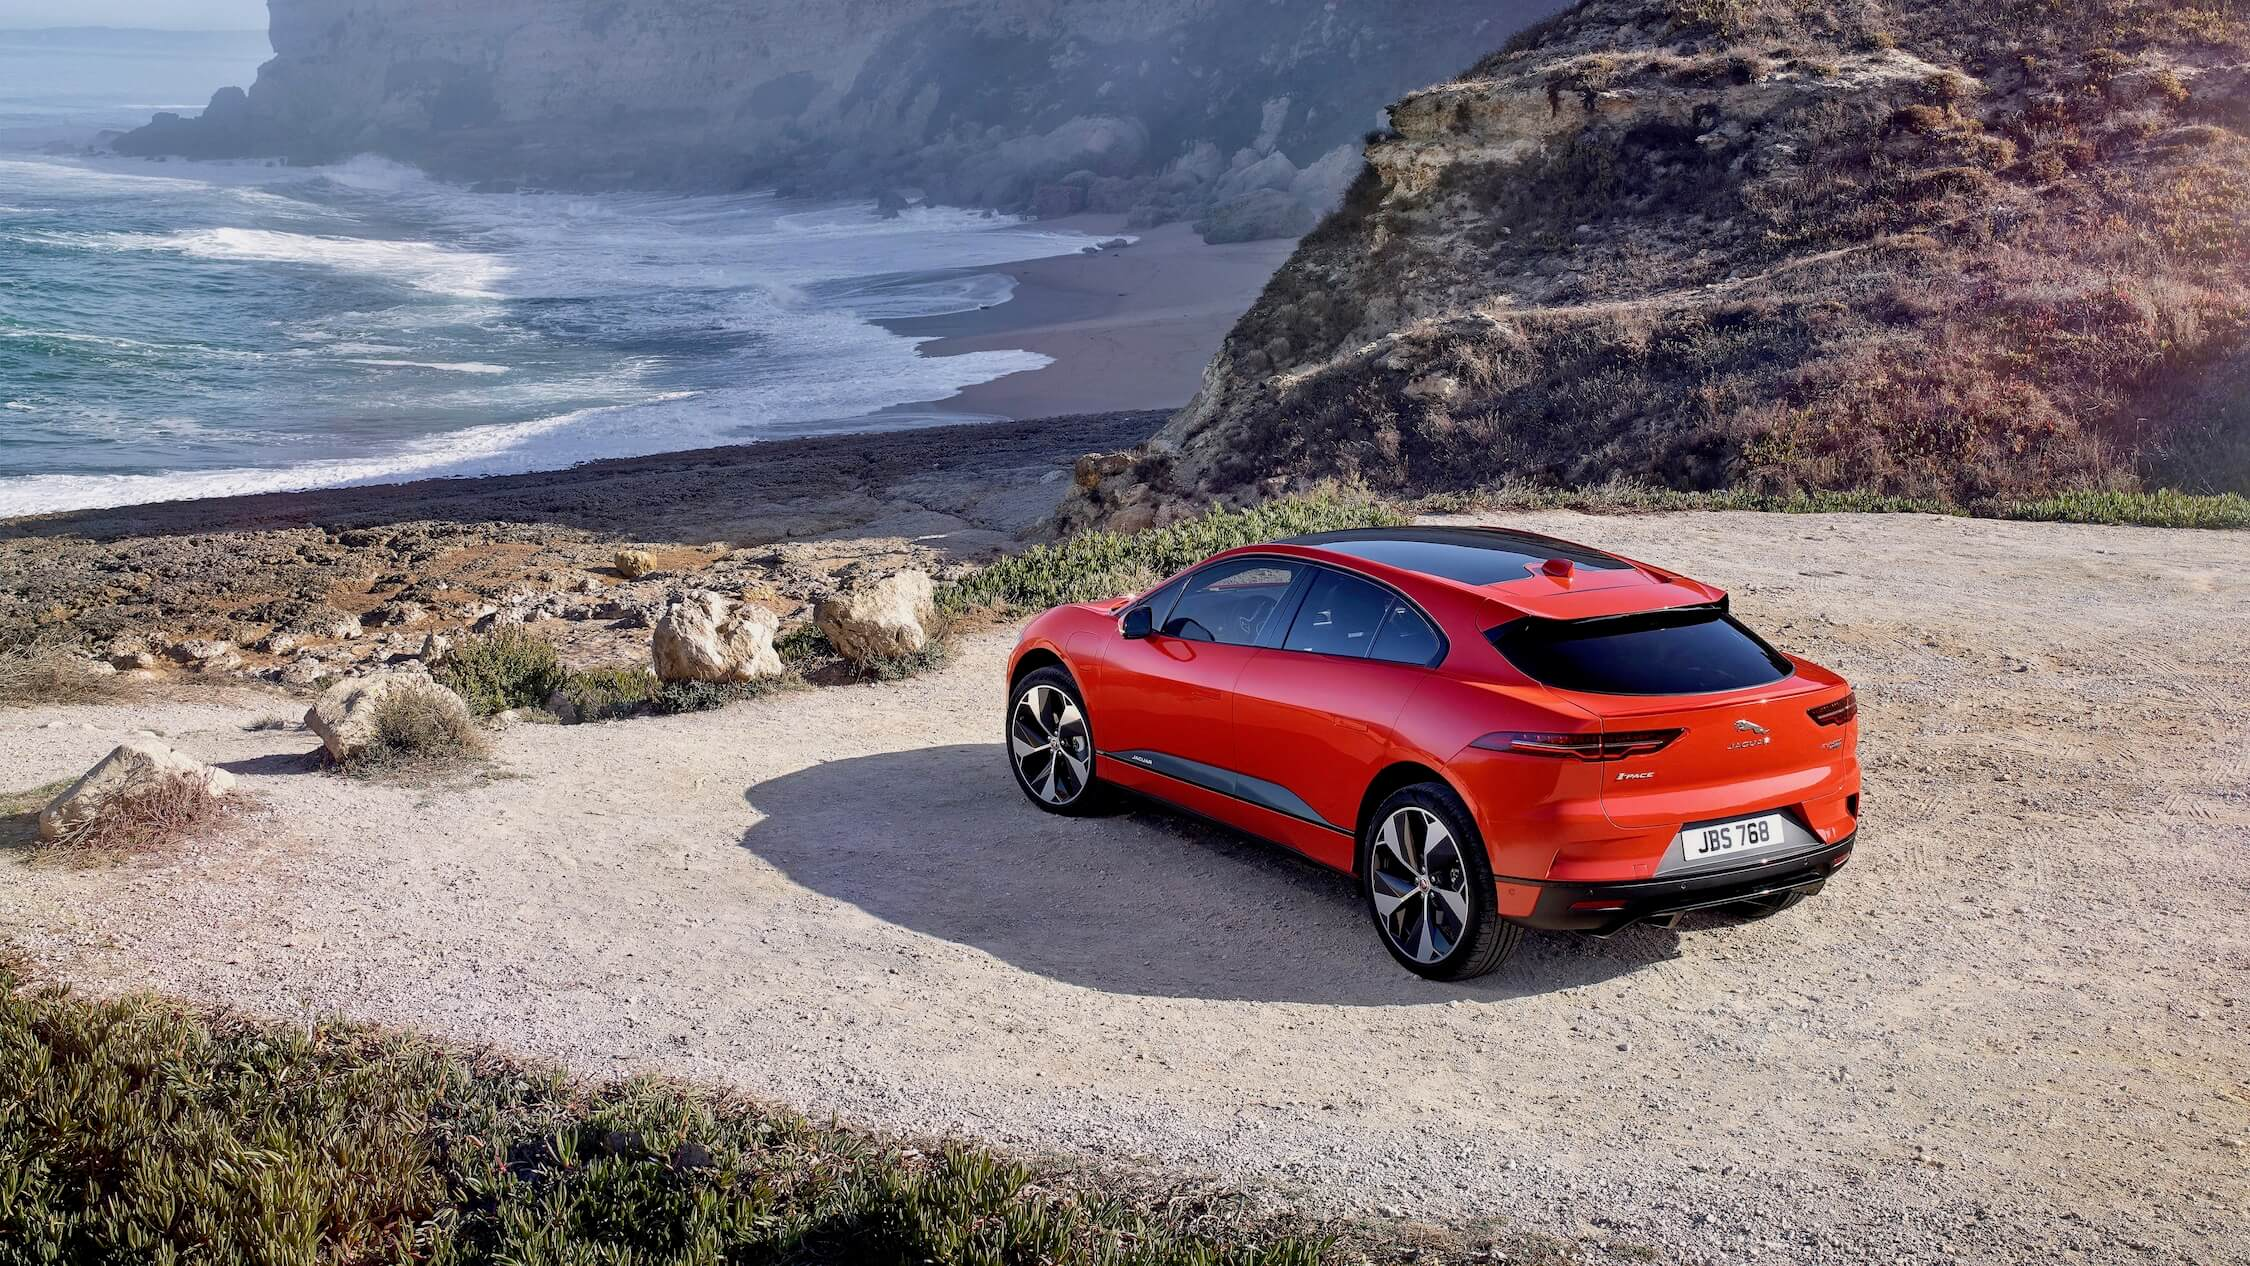 Jaguar I-Pace beach